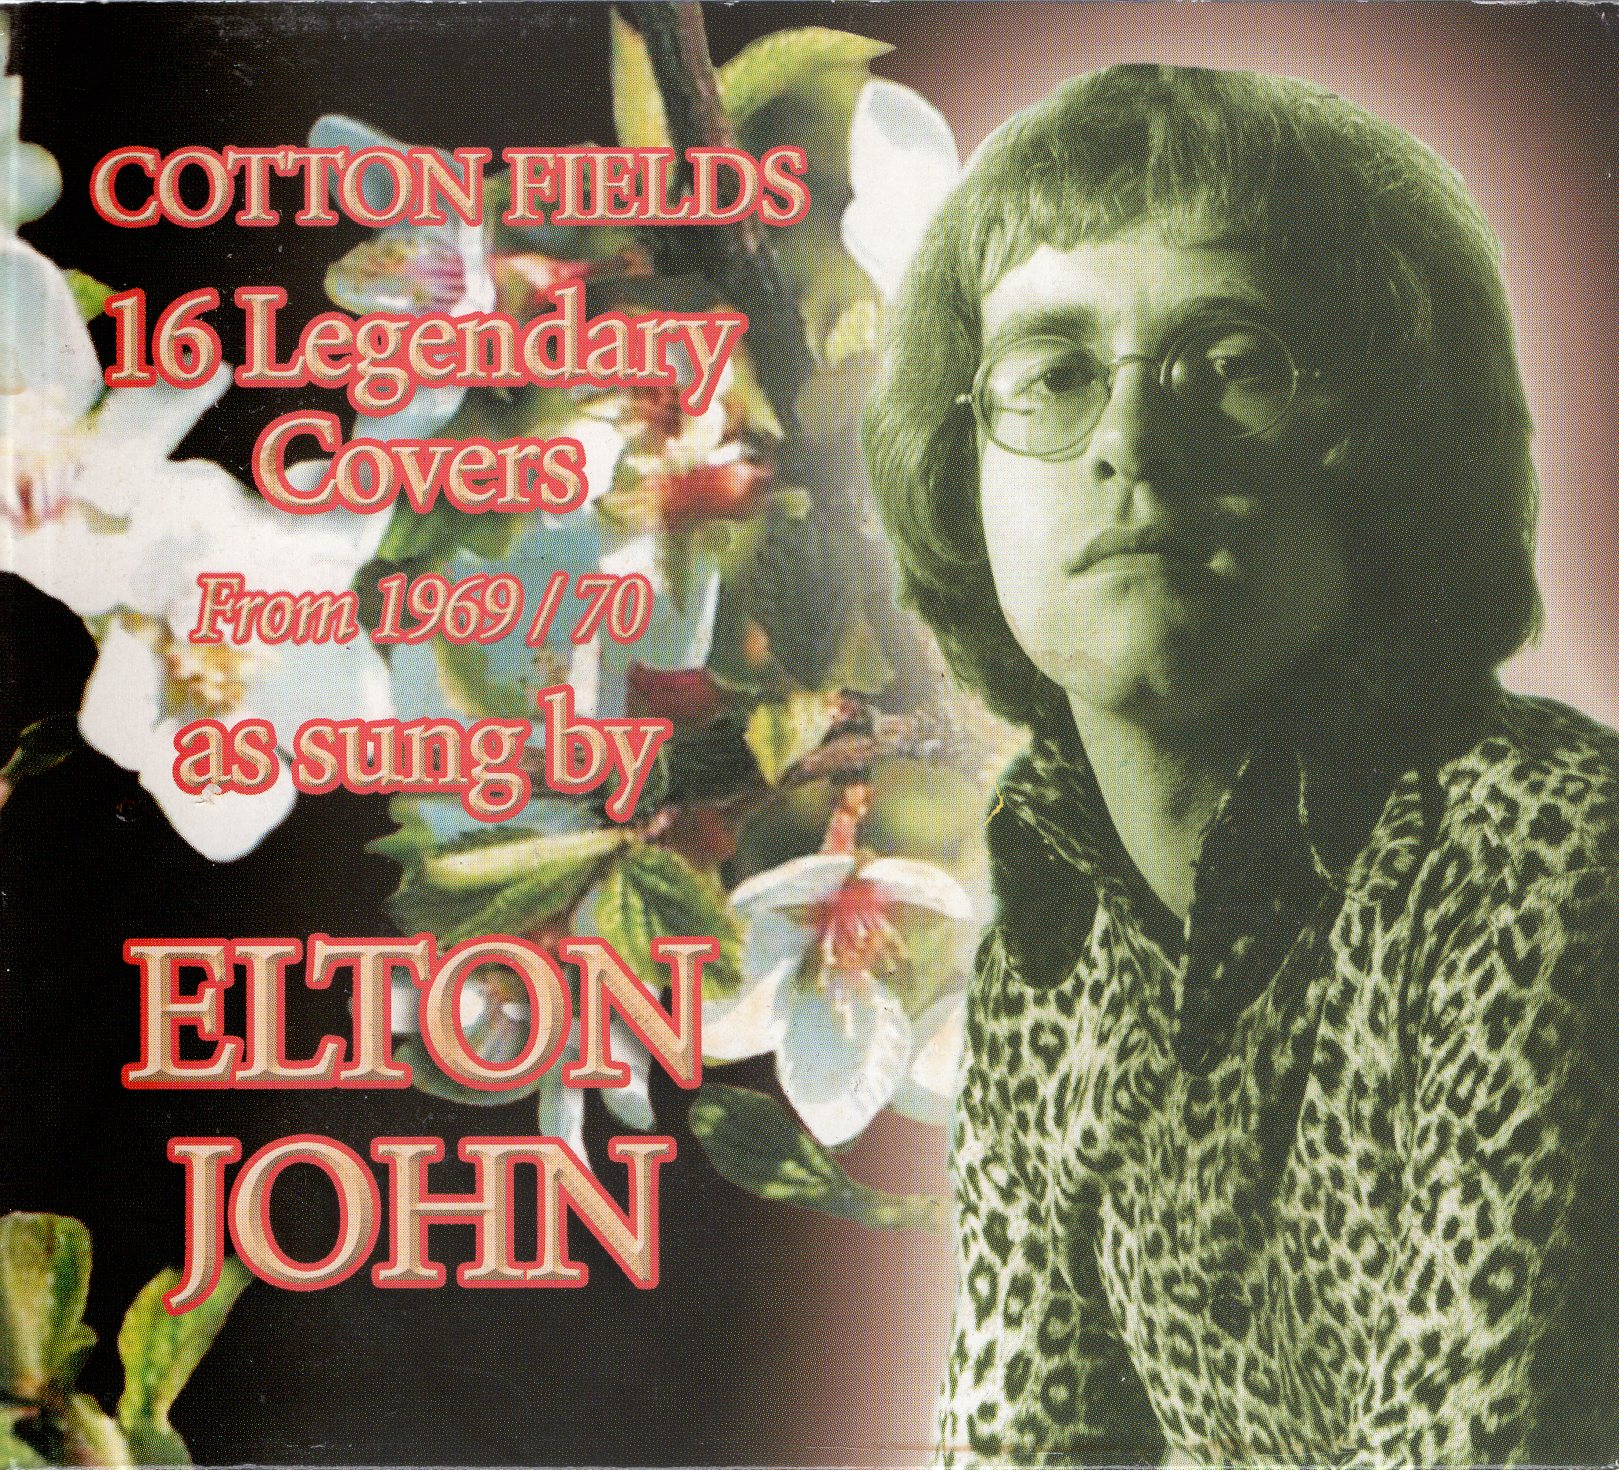 """Cotton Fields 16 Legendary Covers from 1969 / 70"" Elton John"